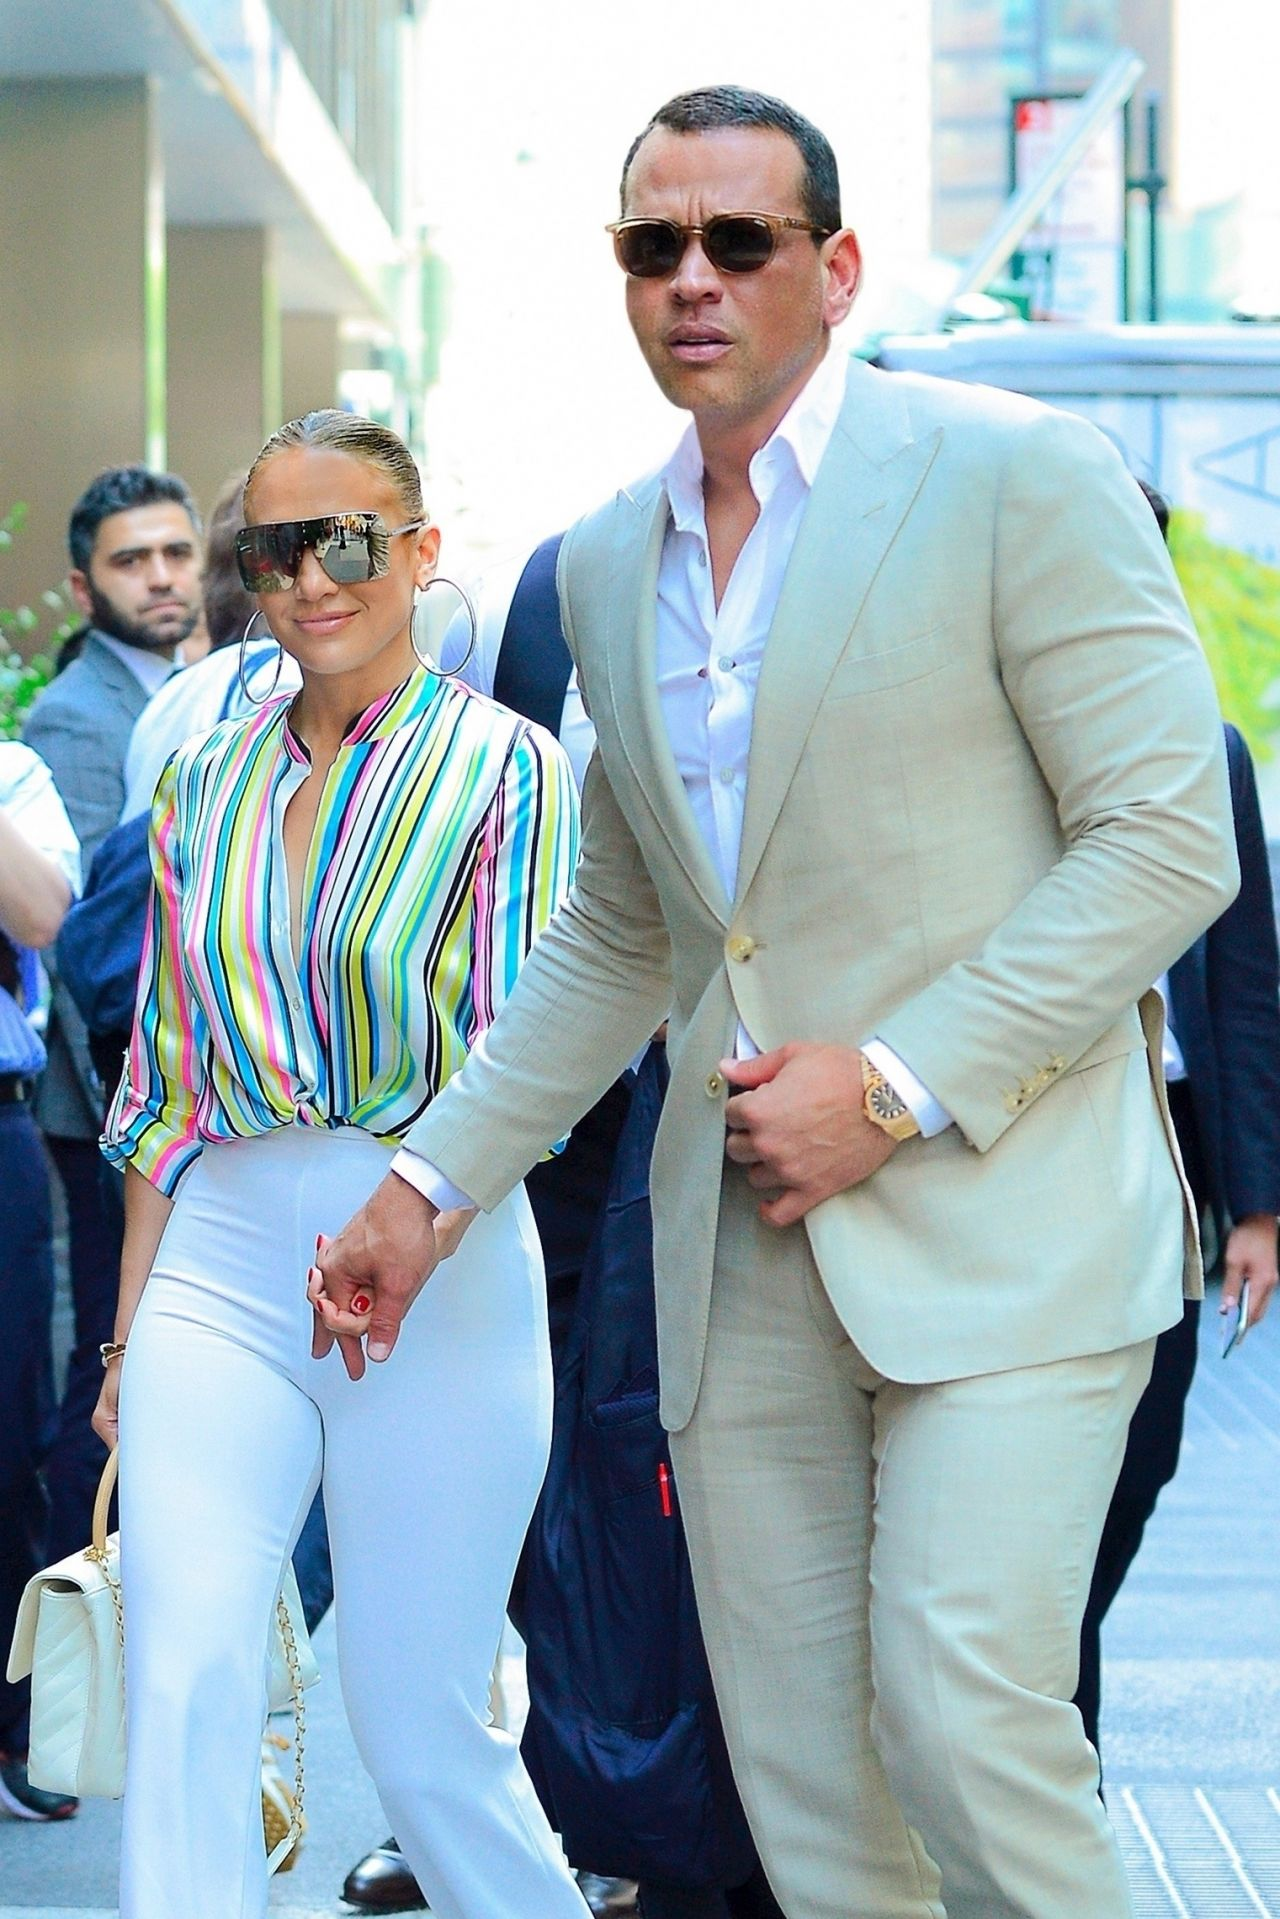 jennifer-lopez-and-alex-rodriguez-leaving-the-casa-lever-in-nyc-06-29-2018-9.jpg